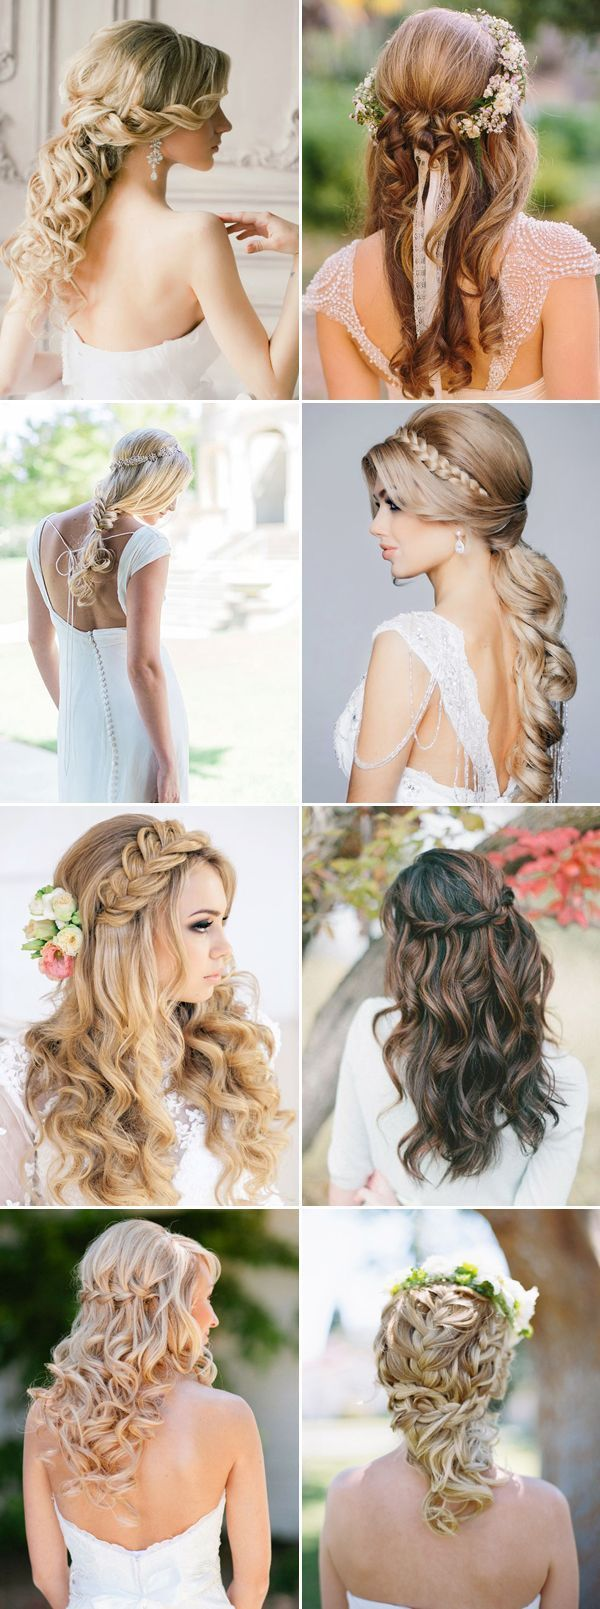 Half Up Half Down Wedding Hairstyles | Peinados | Pinterest ...